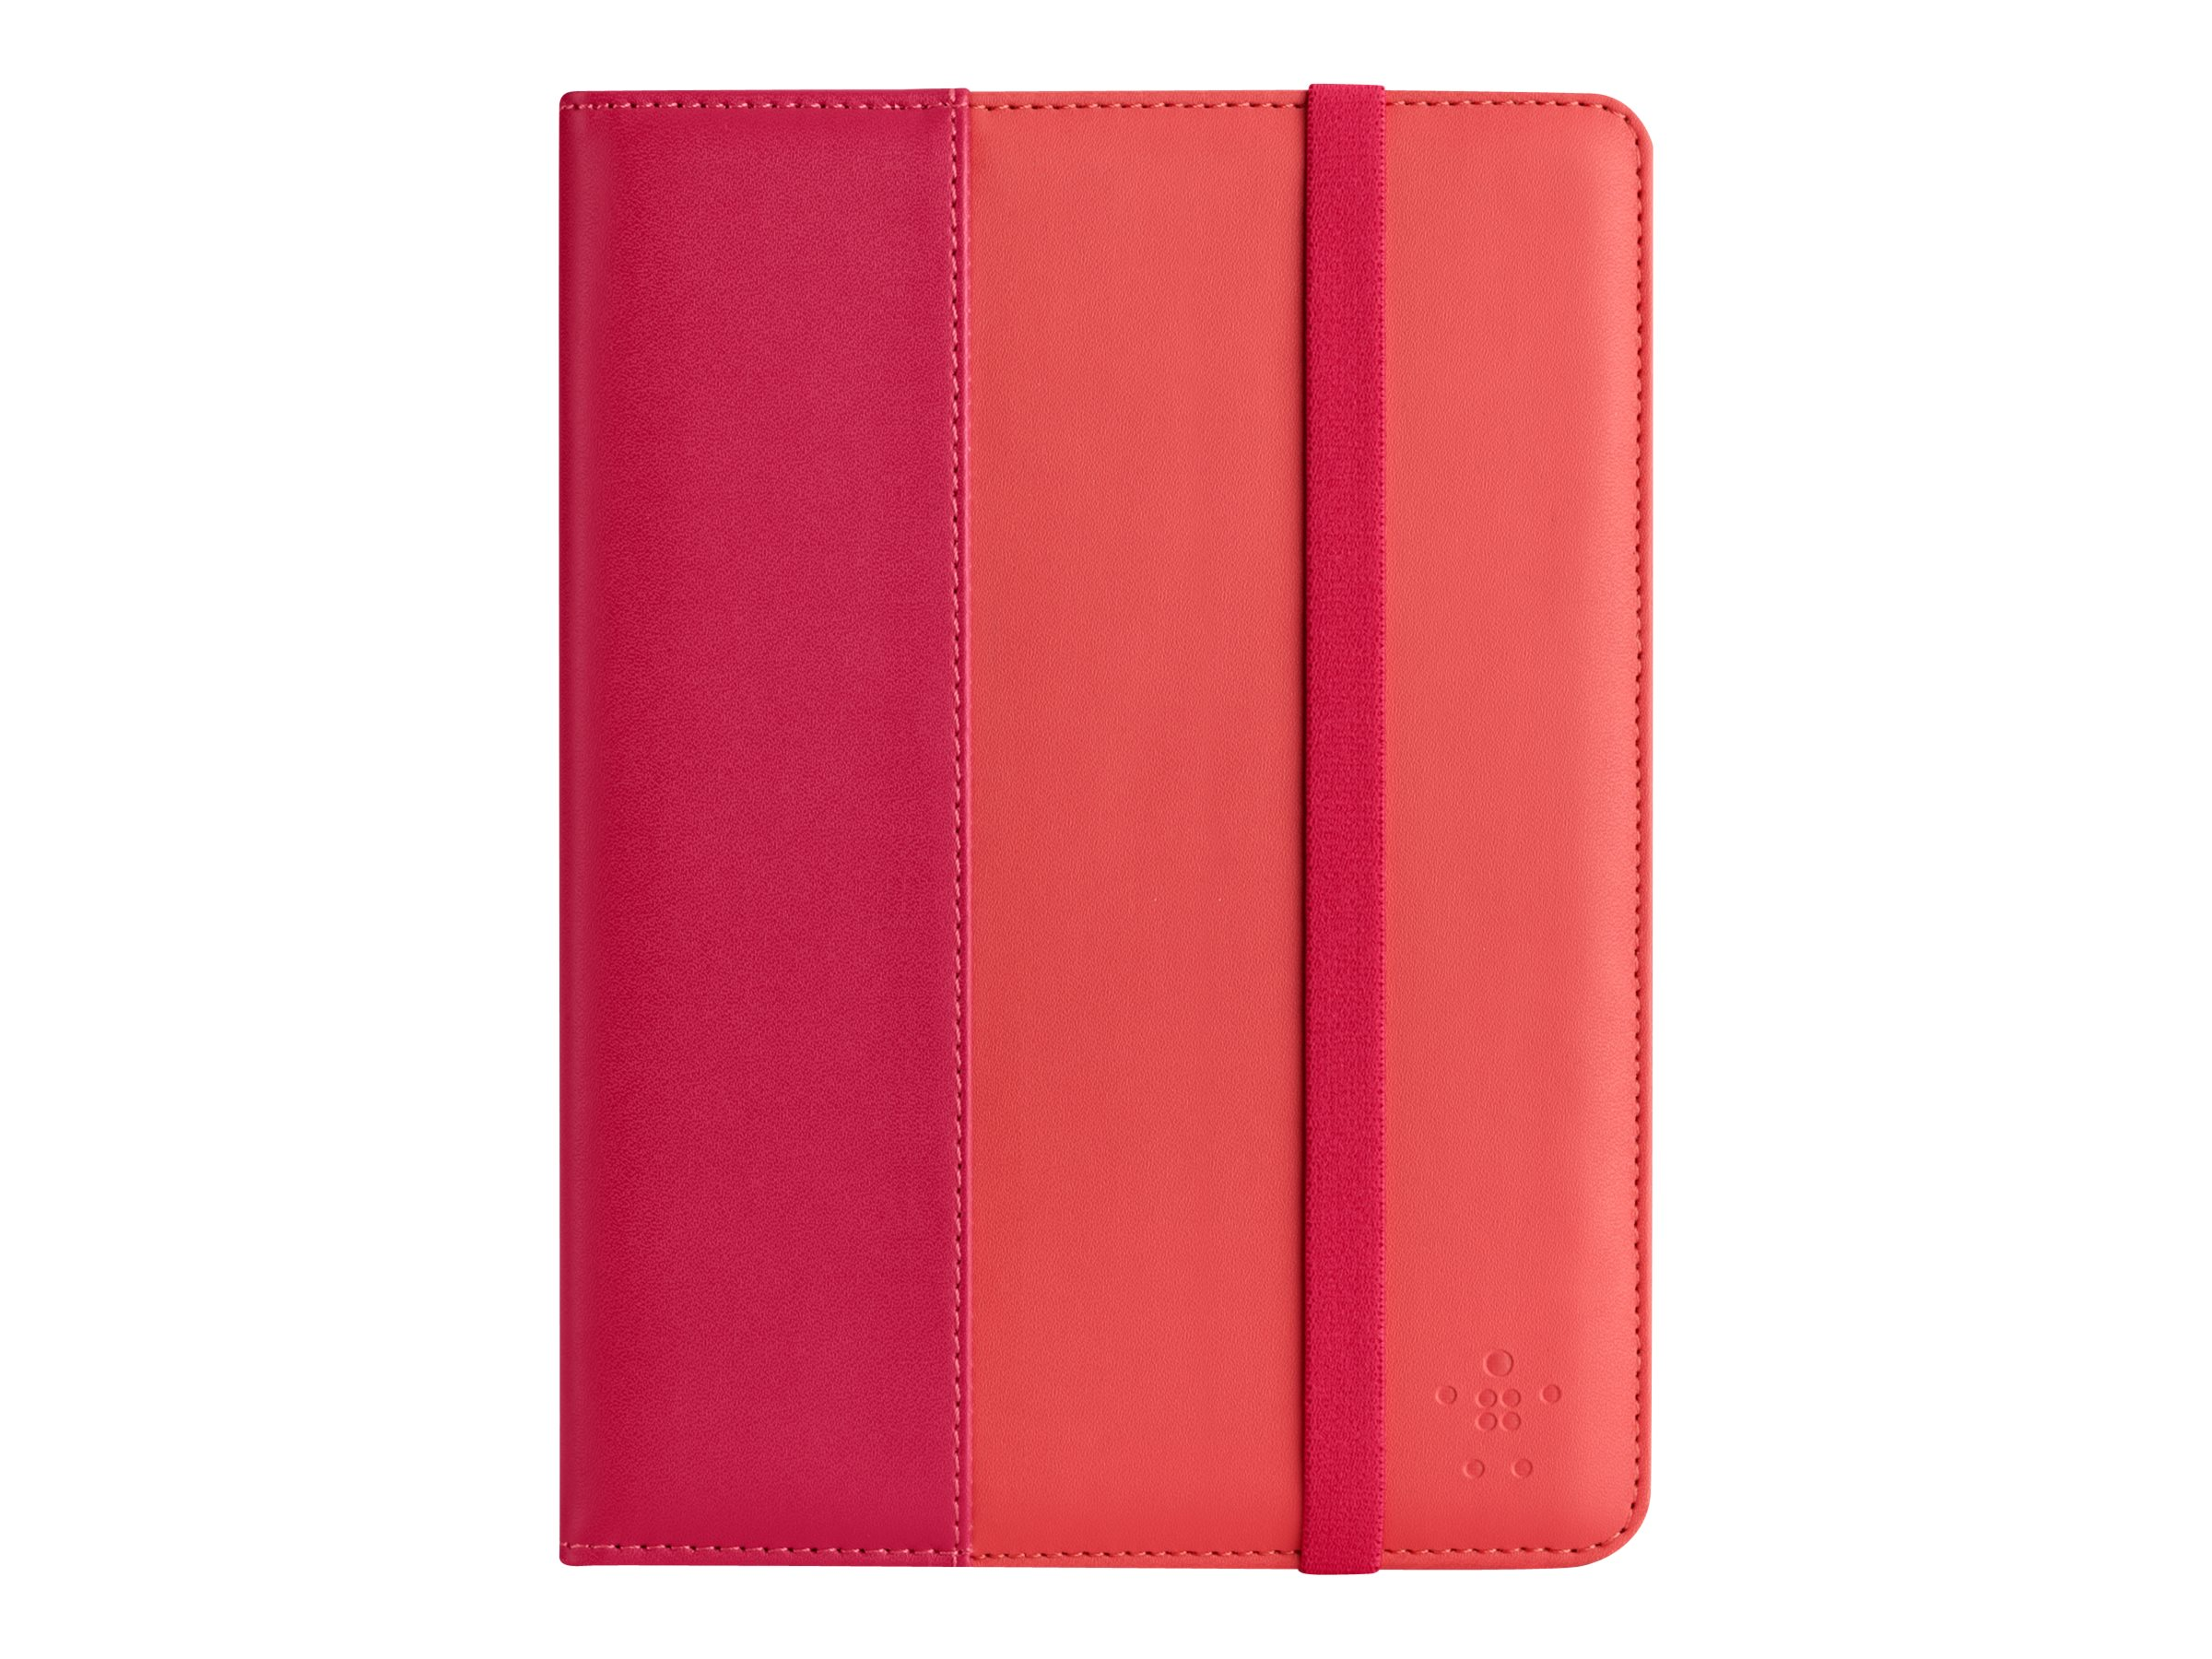 Belkin Classic Tab Cover for Kindle Fire HD 7, Pink, F8N886TTC02